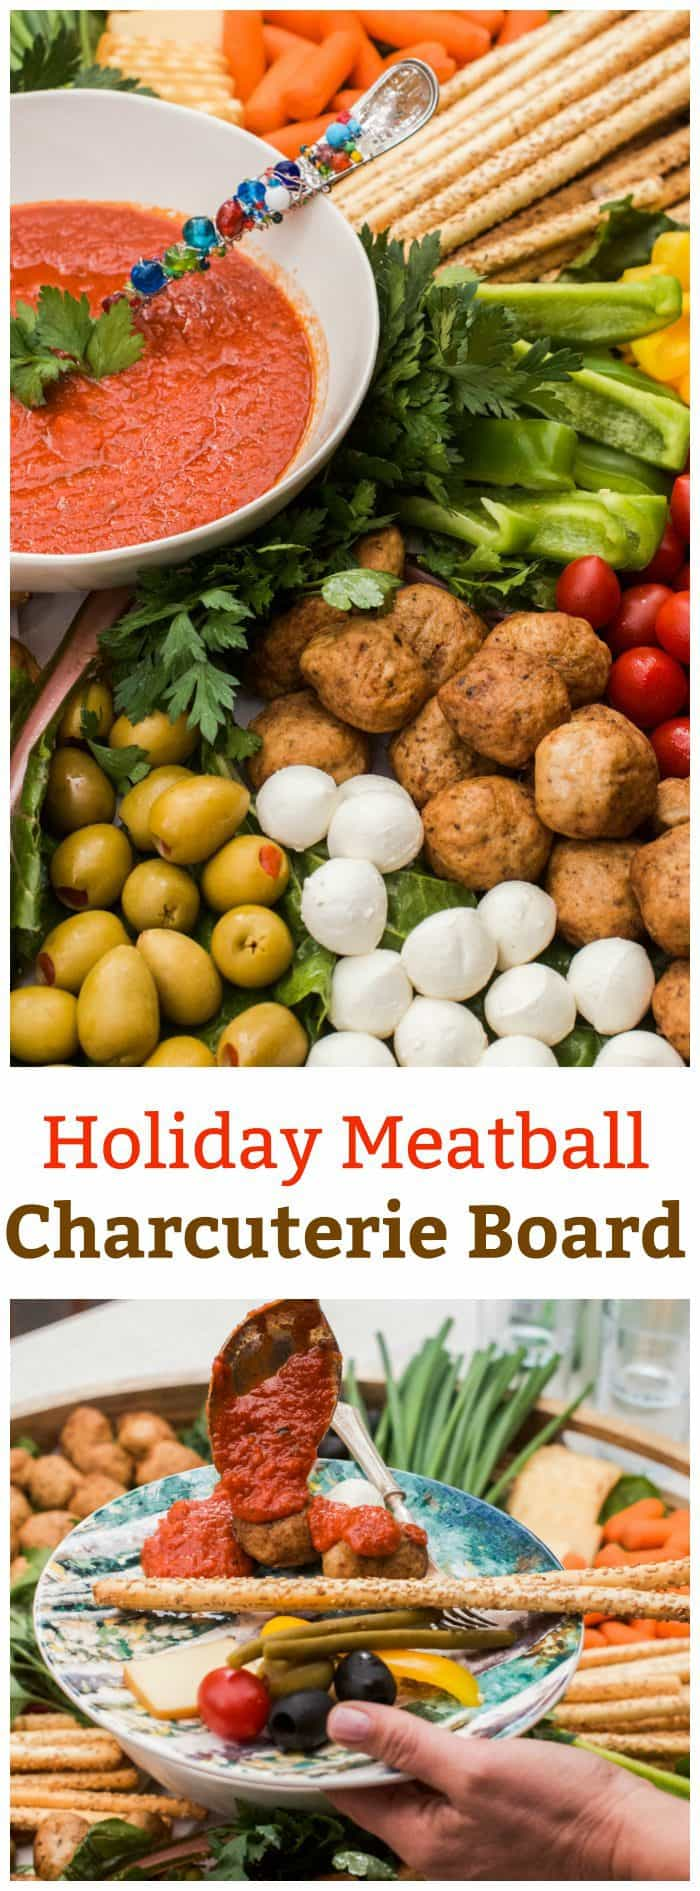 Holiday Meatball Charcuterie Board in partnership with CLASSICO